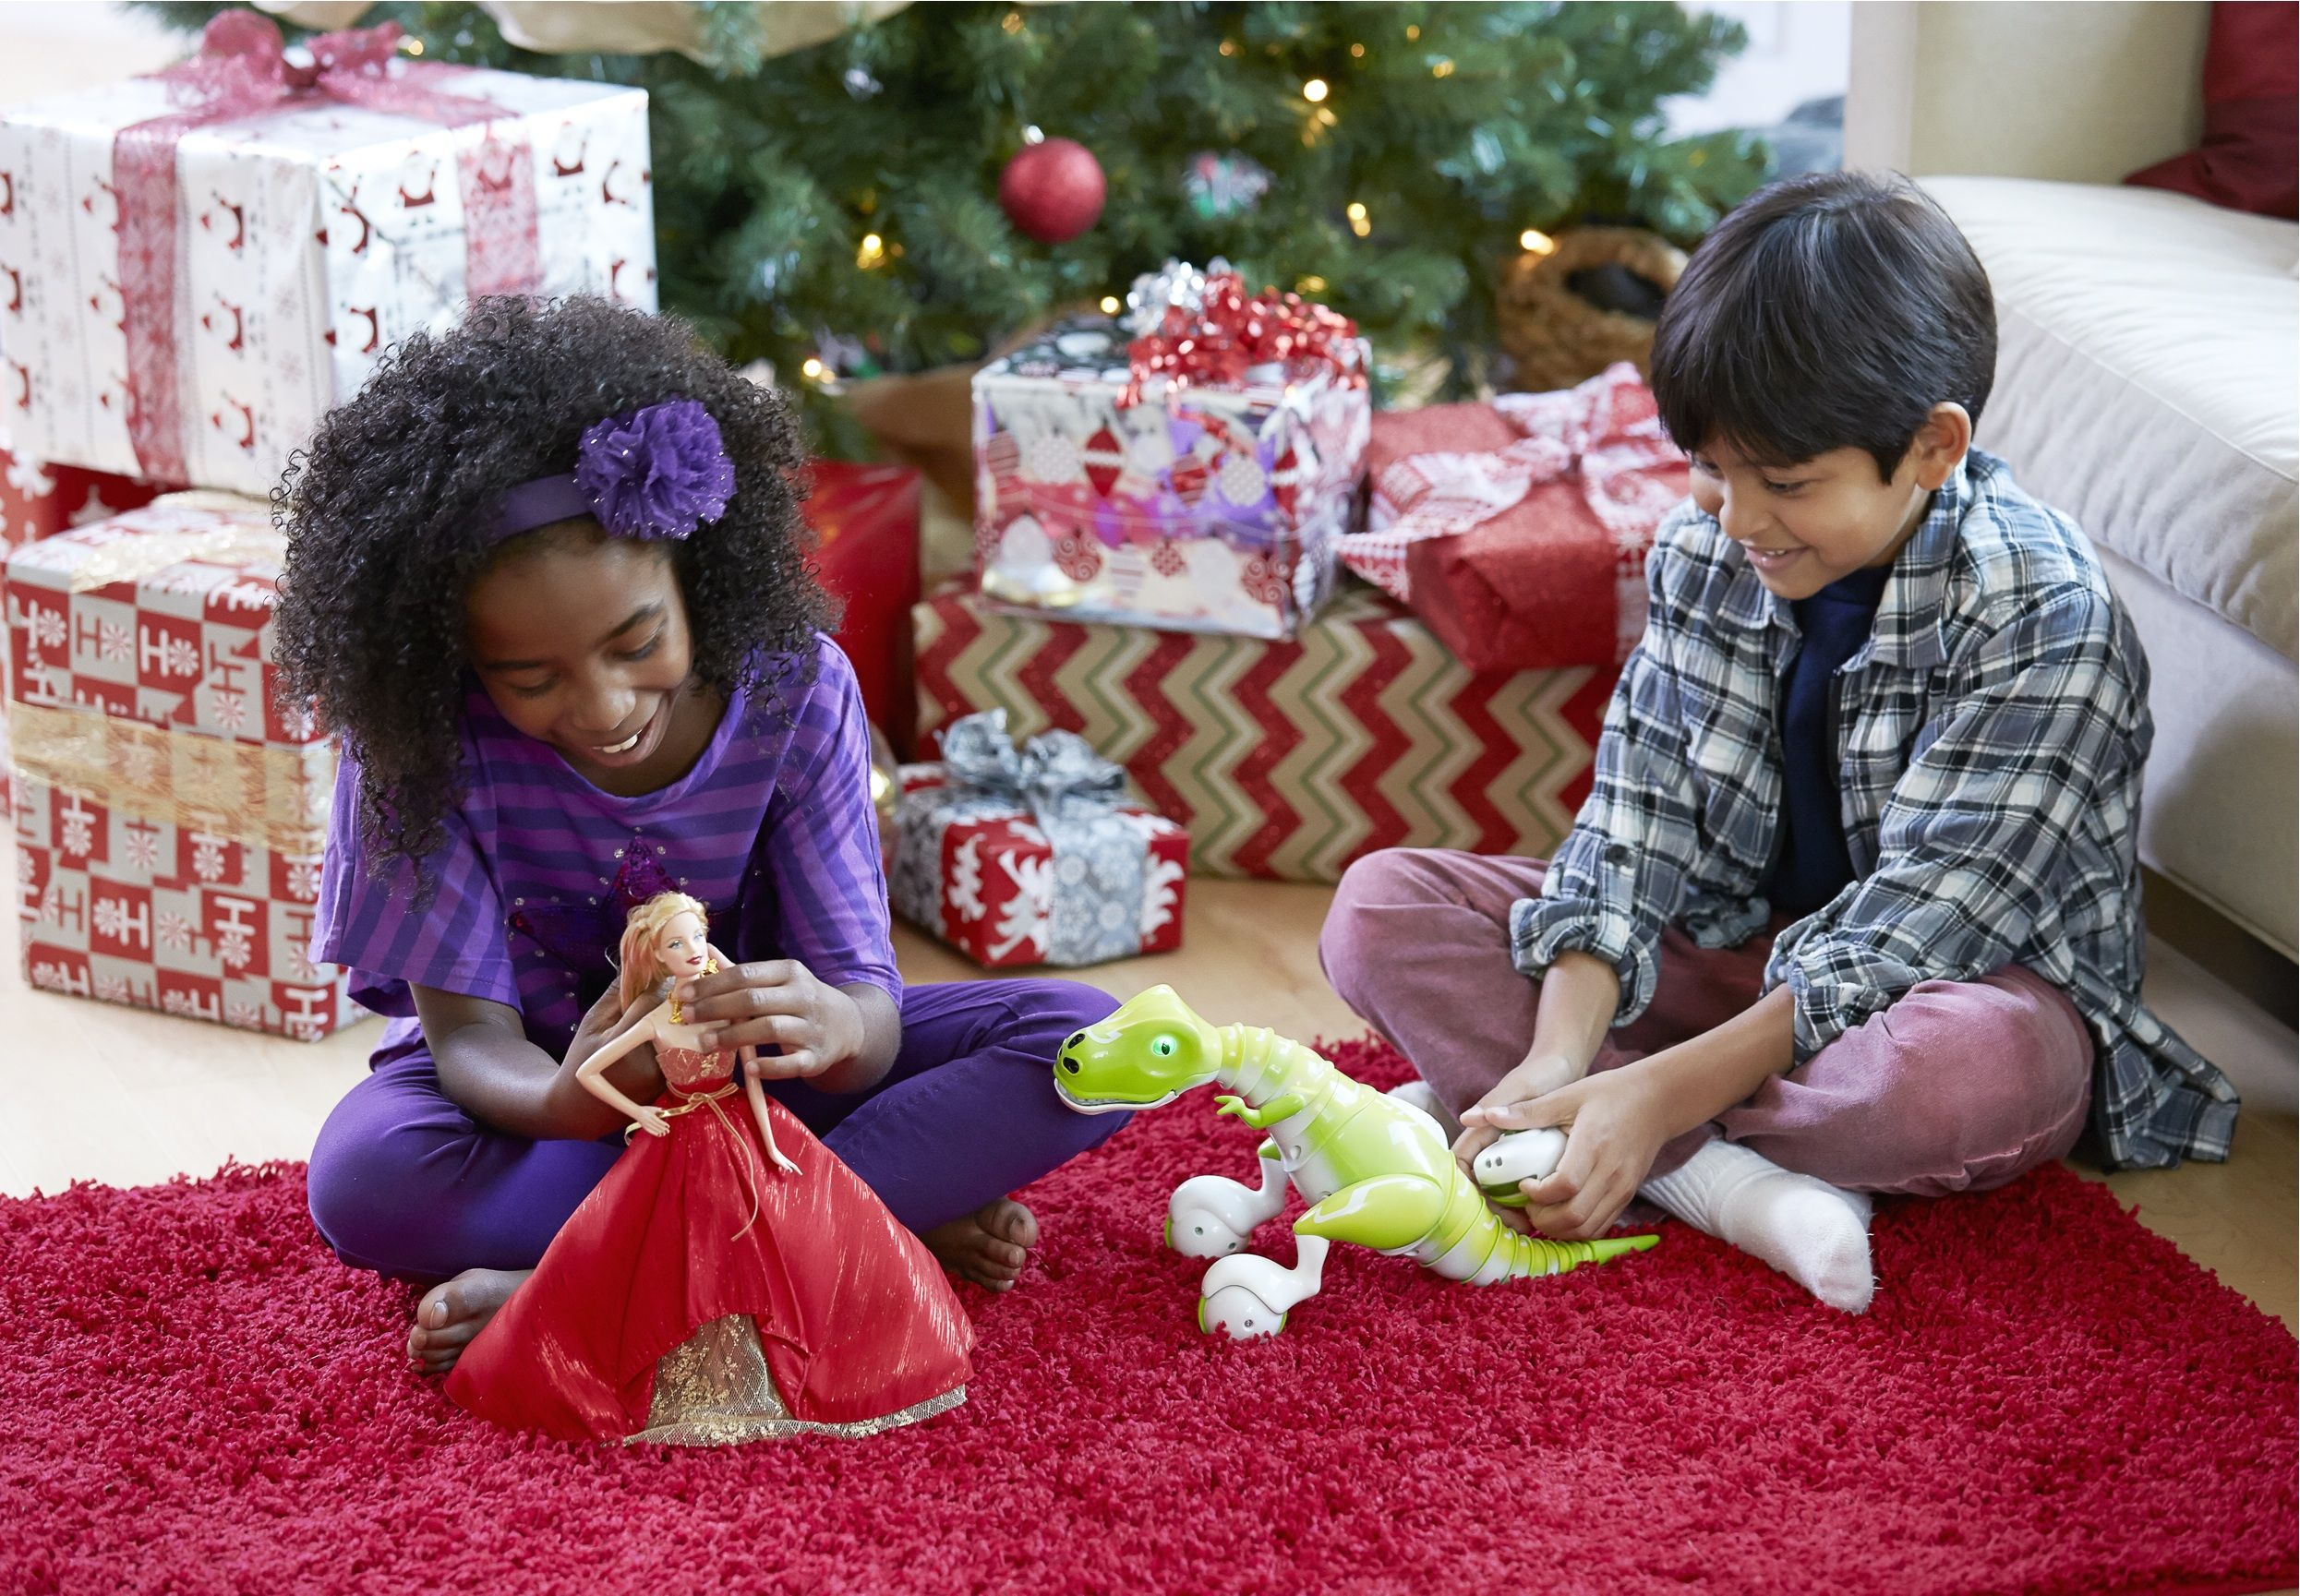 FUN TOYS FOR GIRLS AND BOYS Give them a Christmas to remember